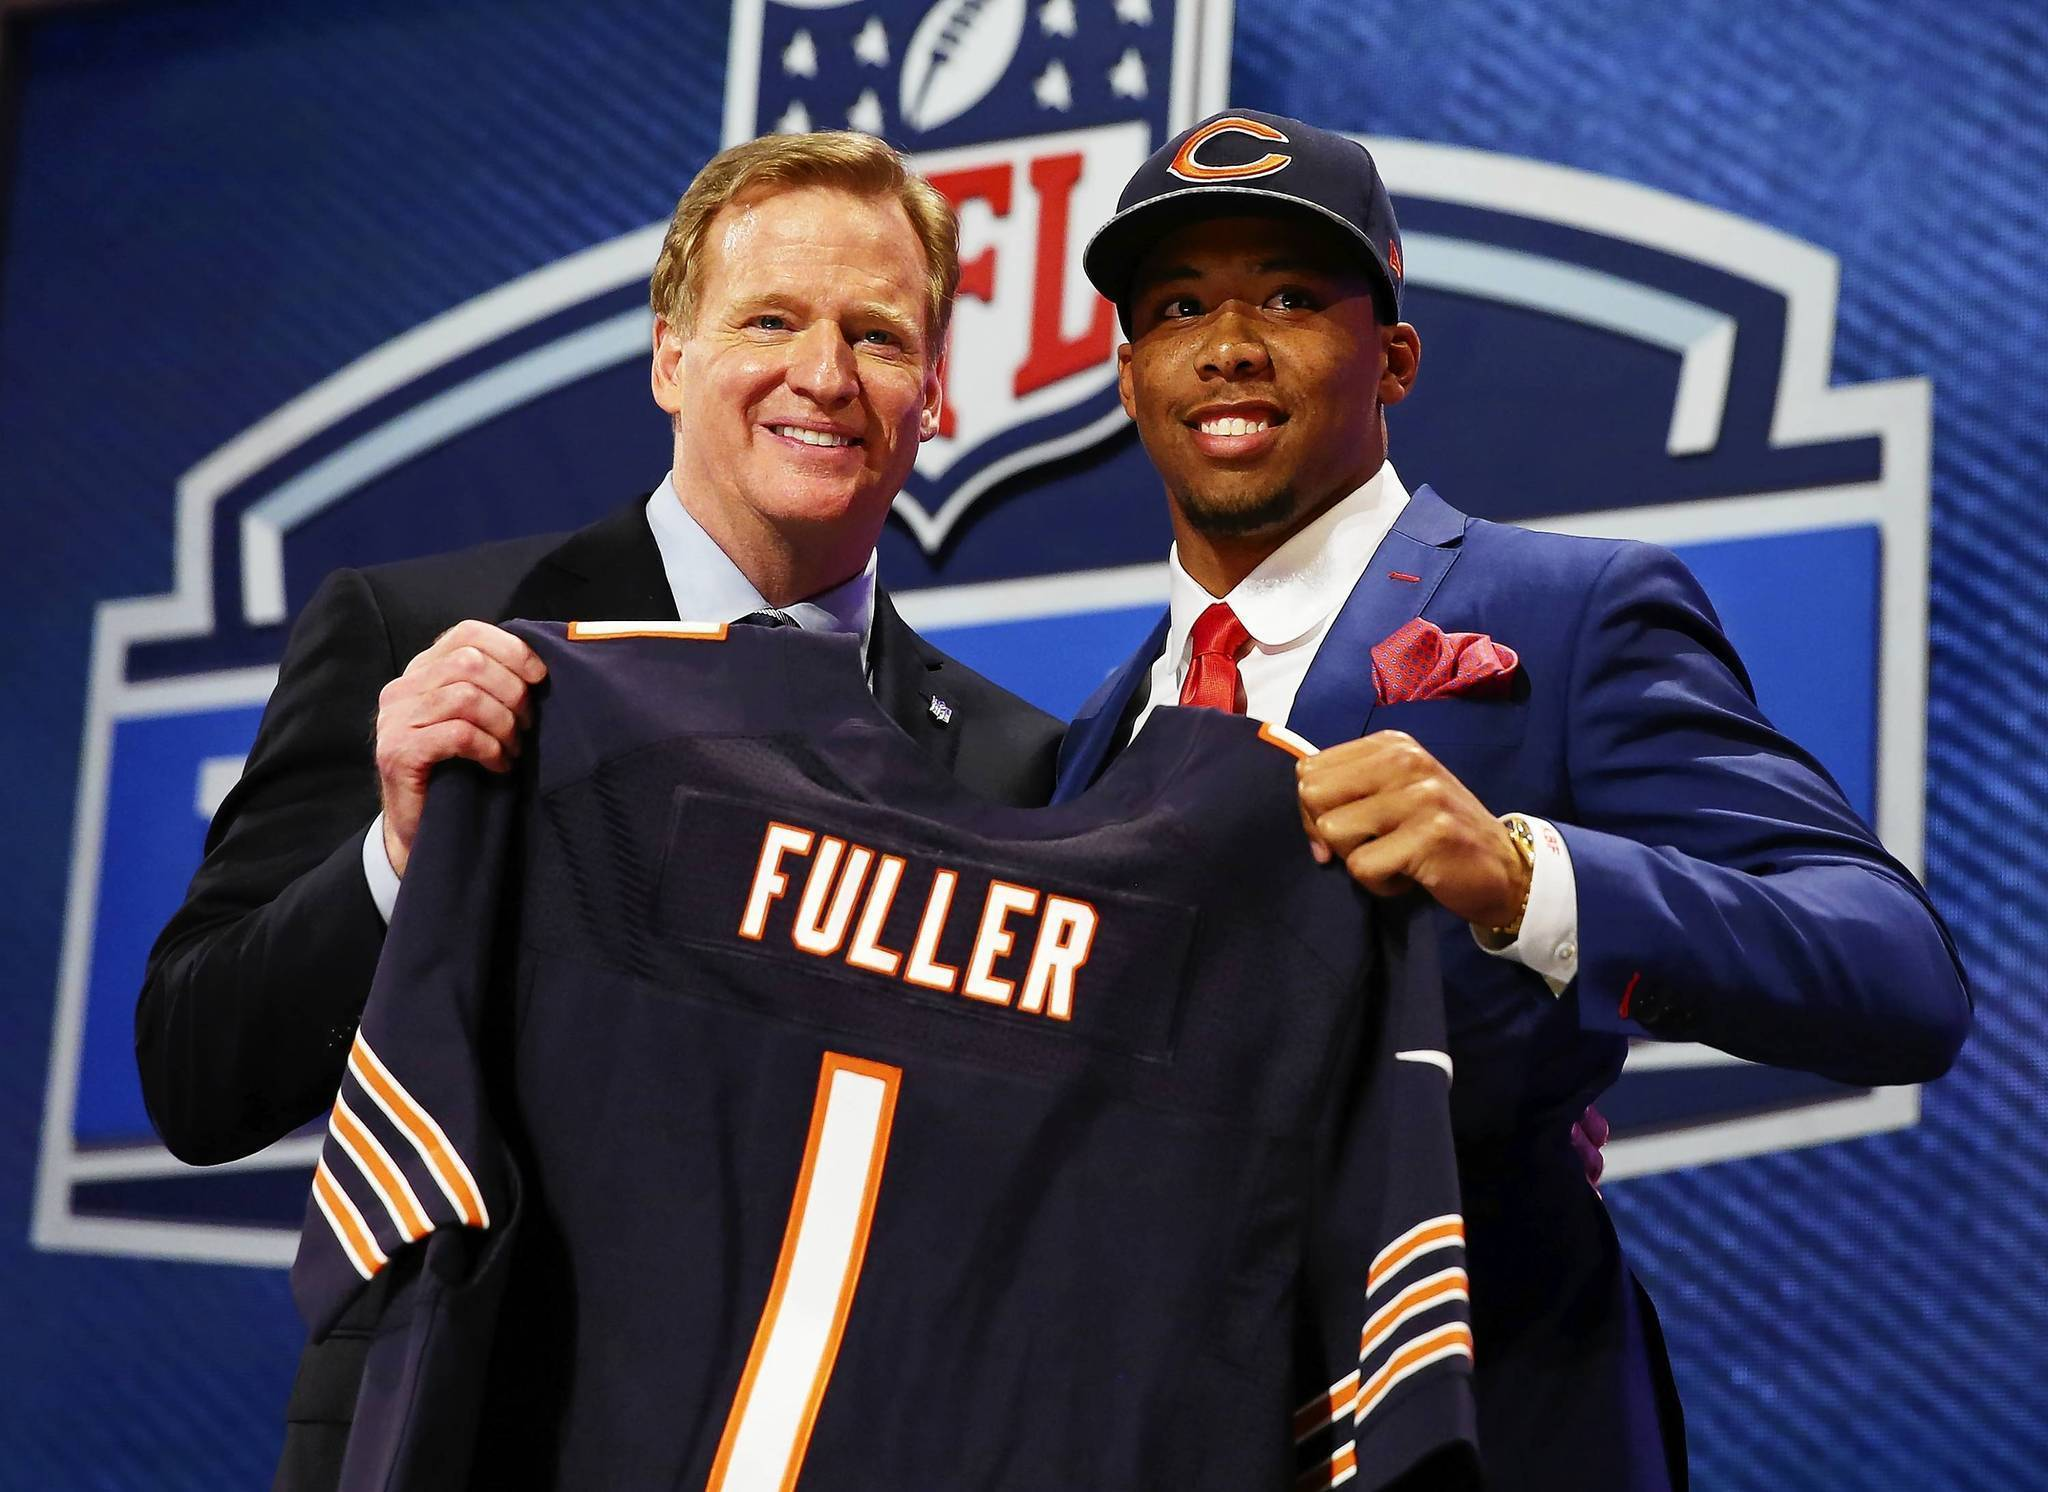 Chicago to try giving NFL the business with draft